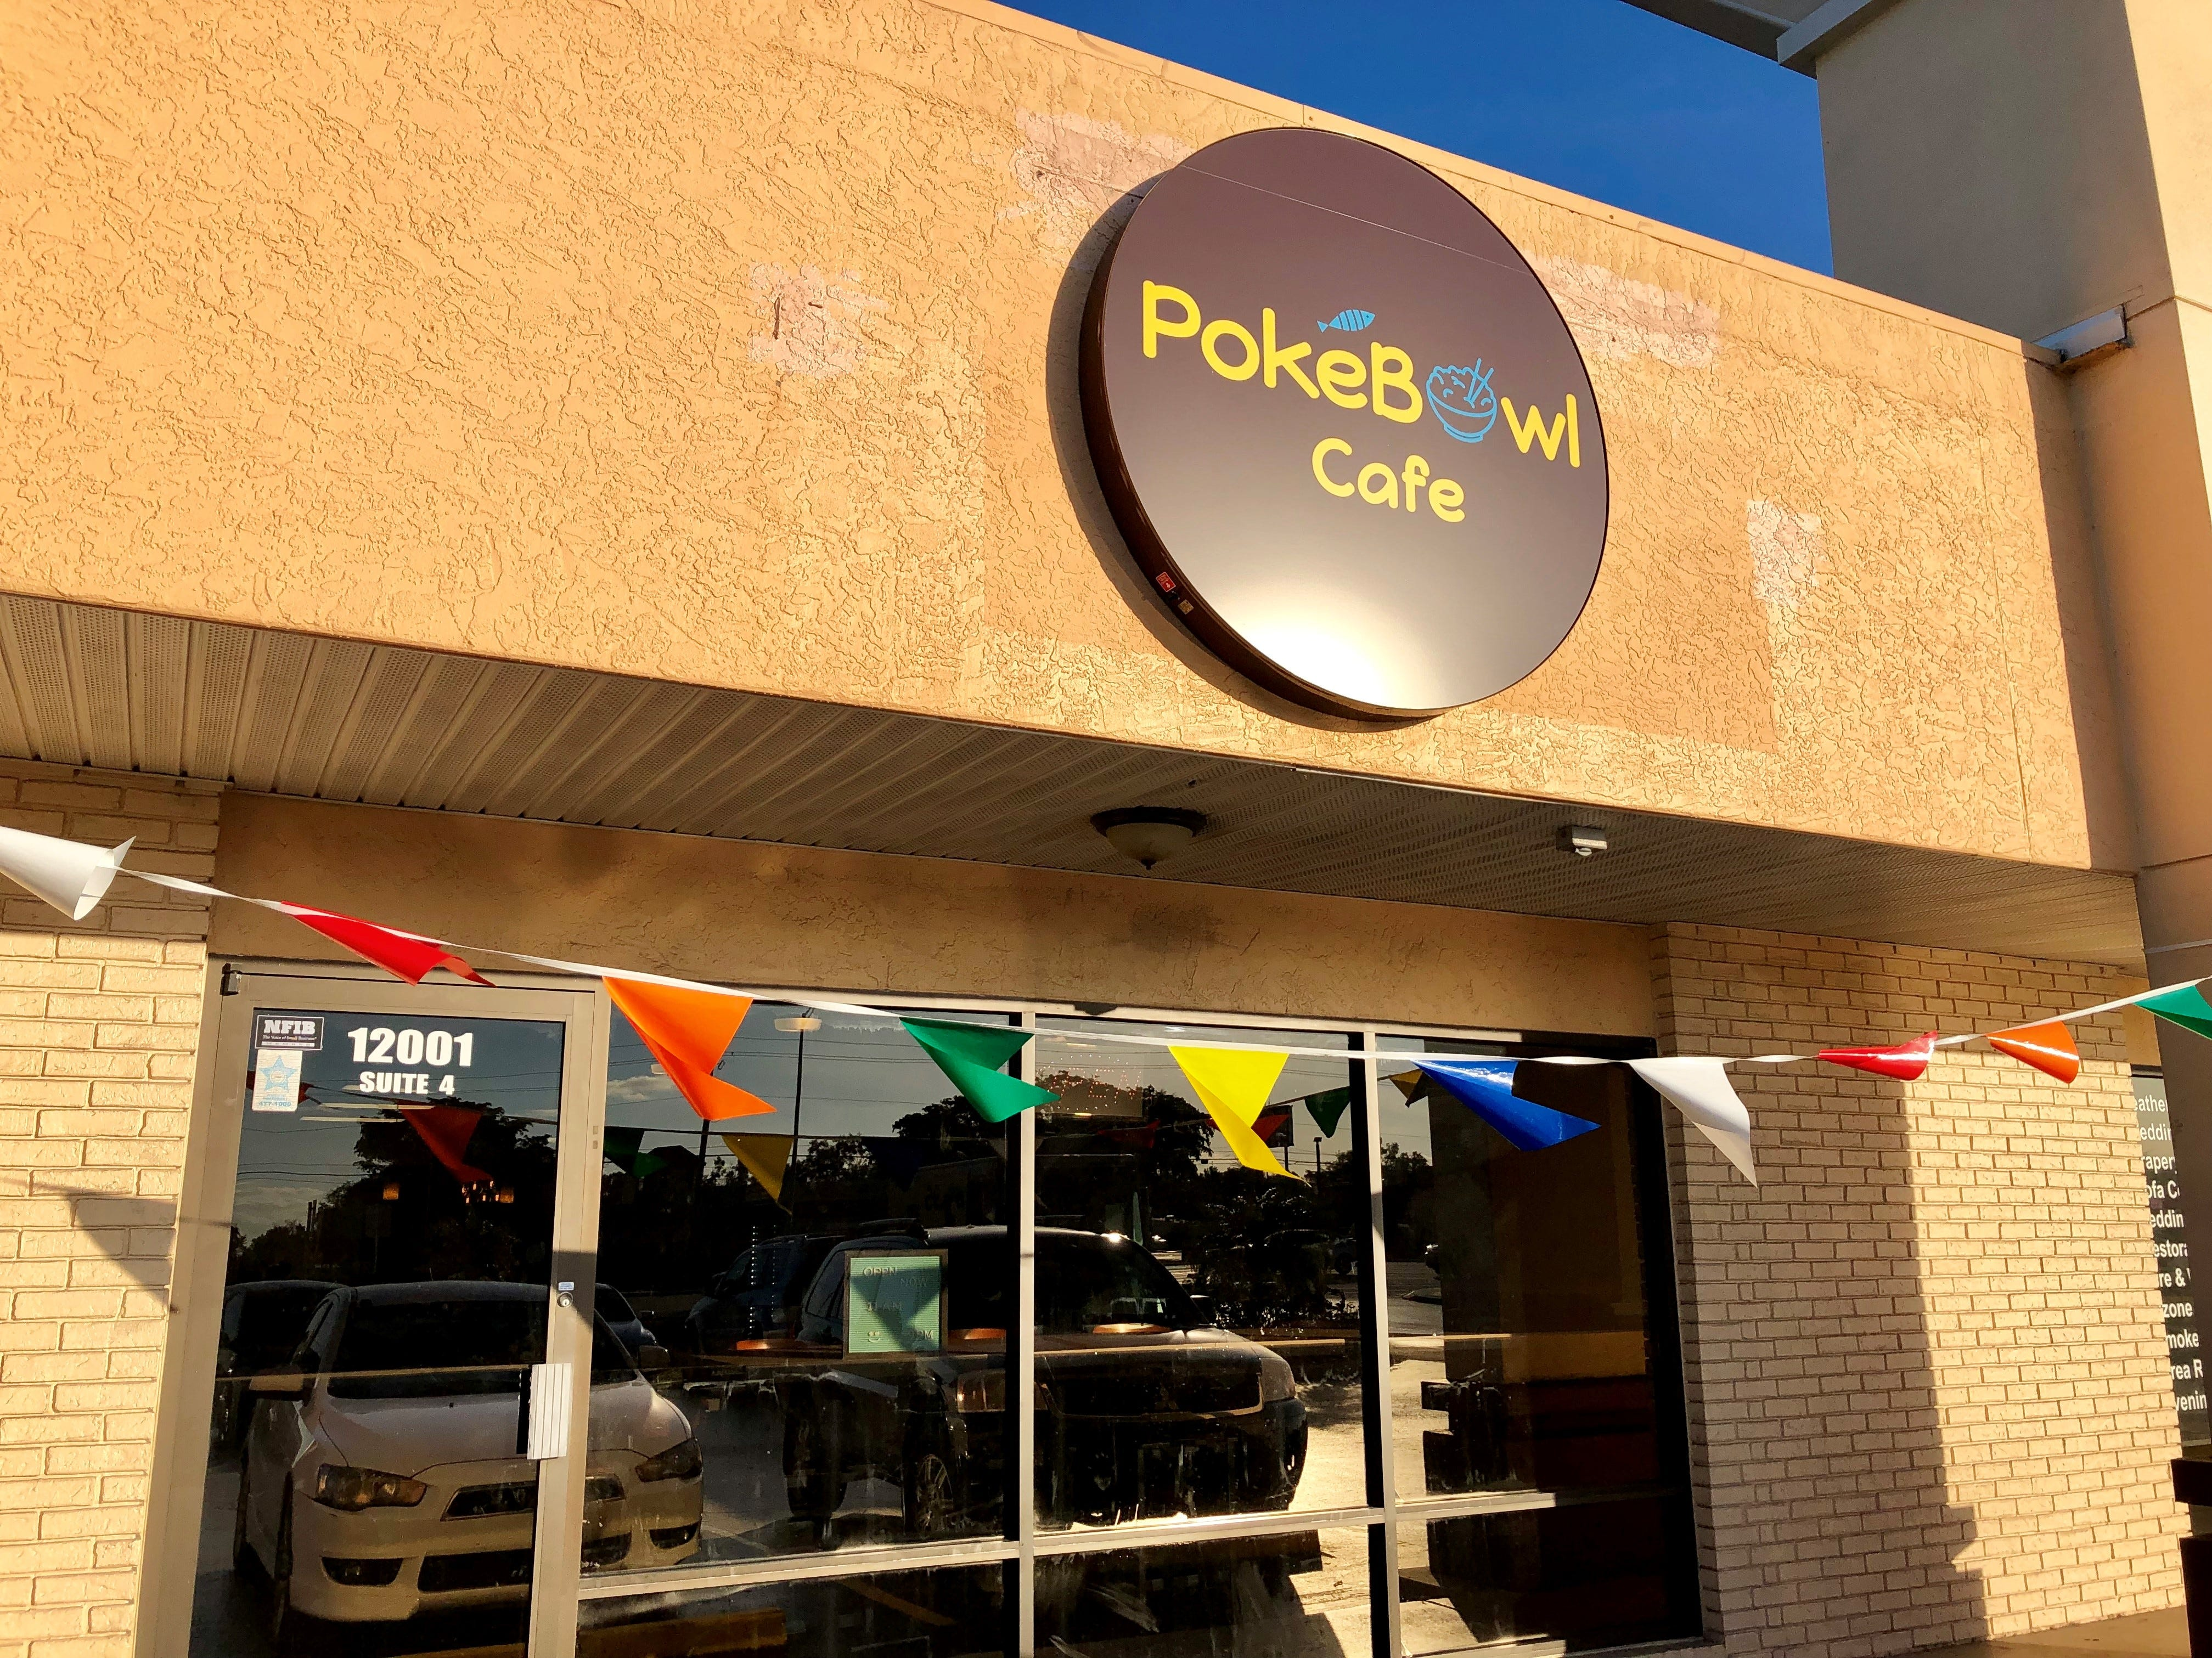 PokeBowl Cafe opened in November in the former PrimoHoagies space near Te Villas in Fort Myers.